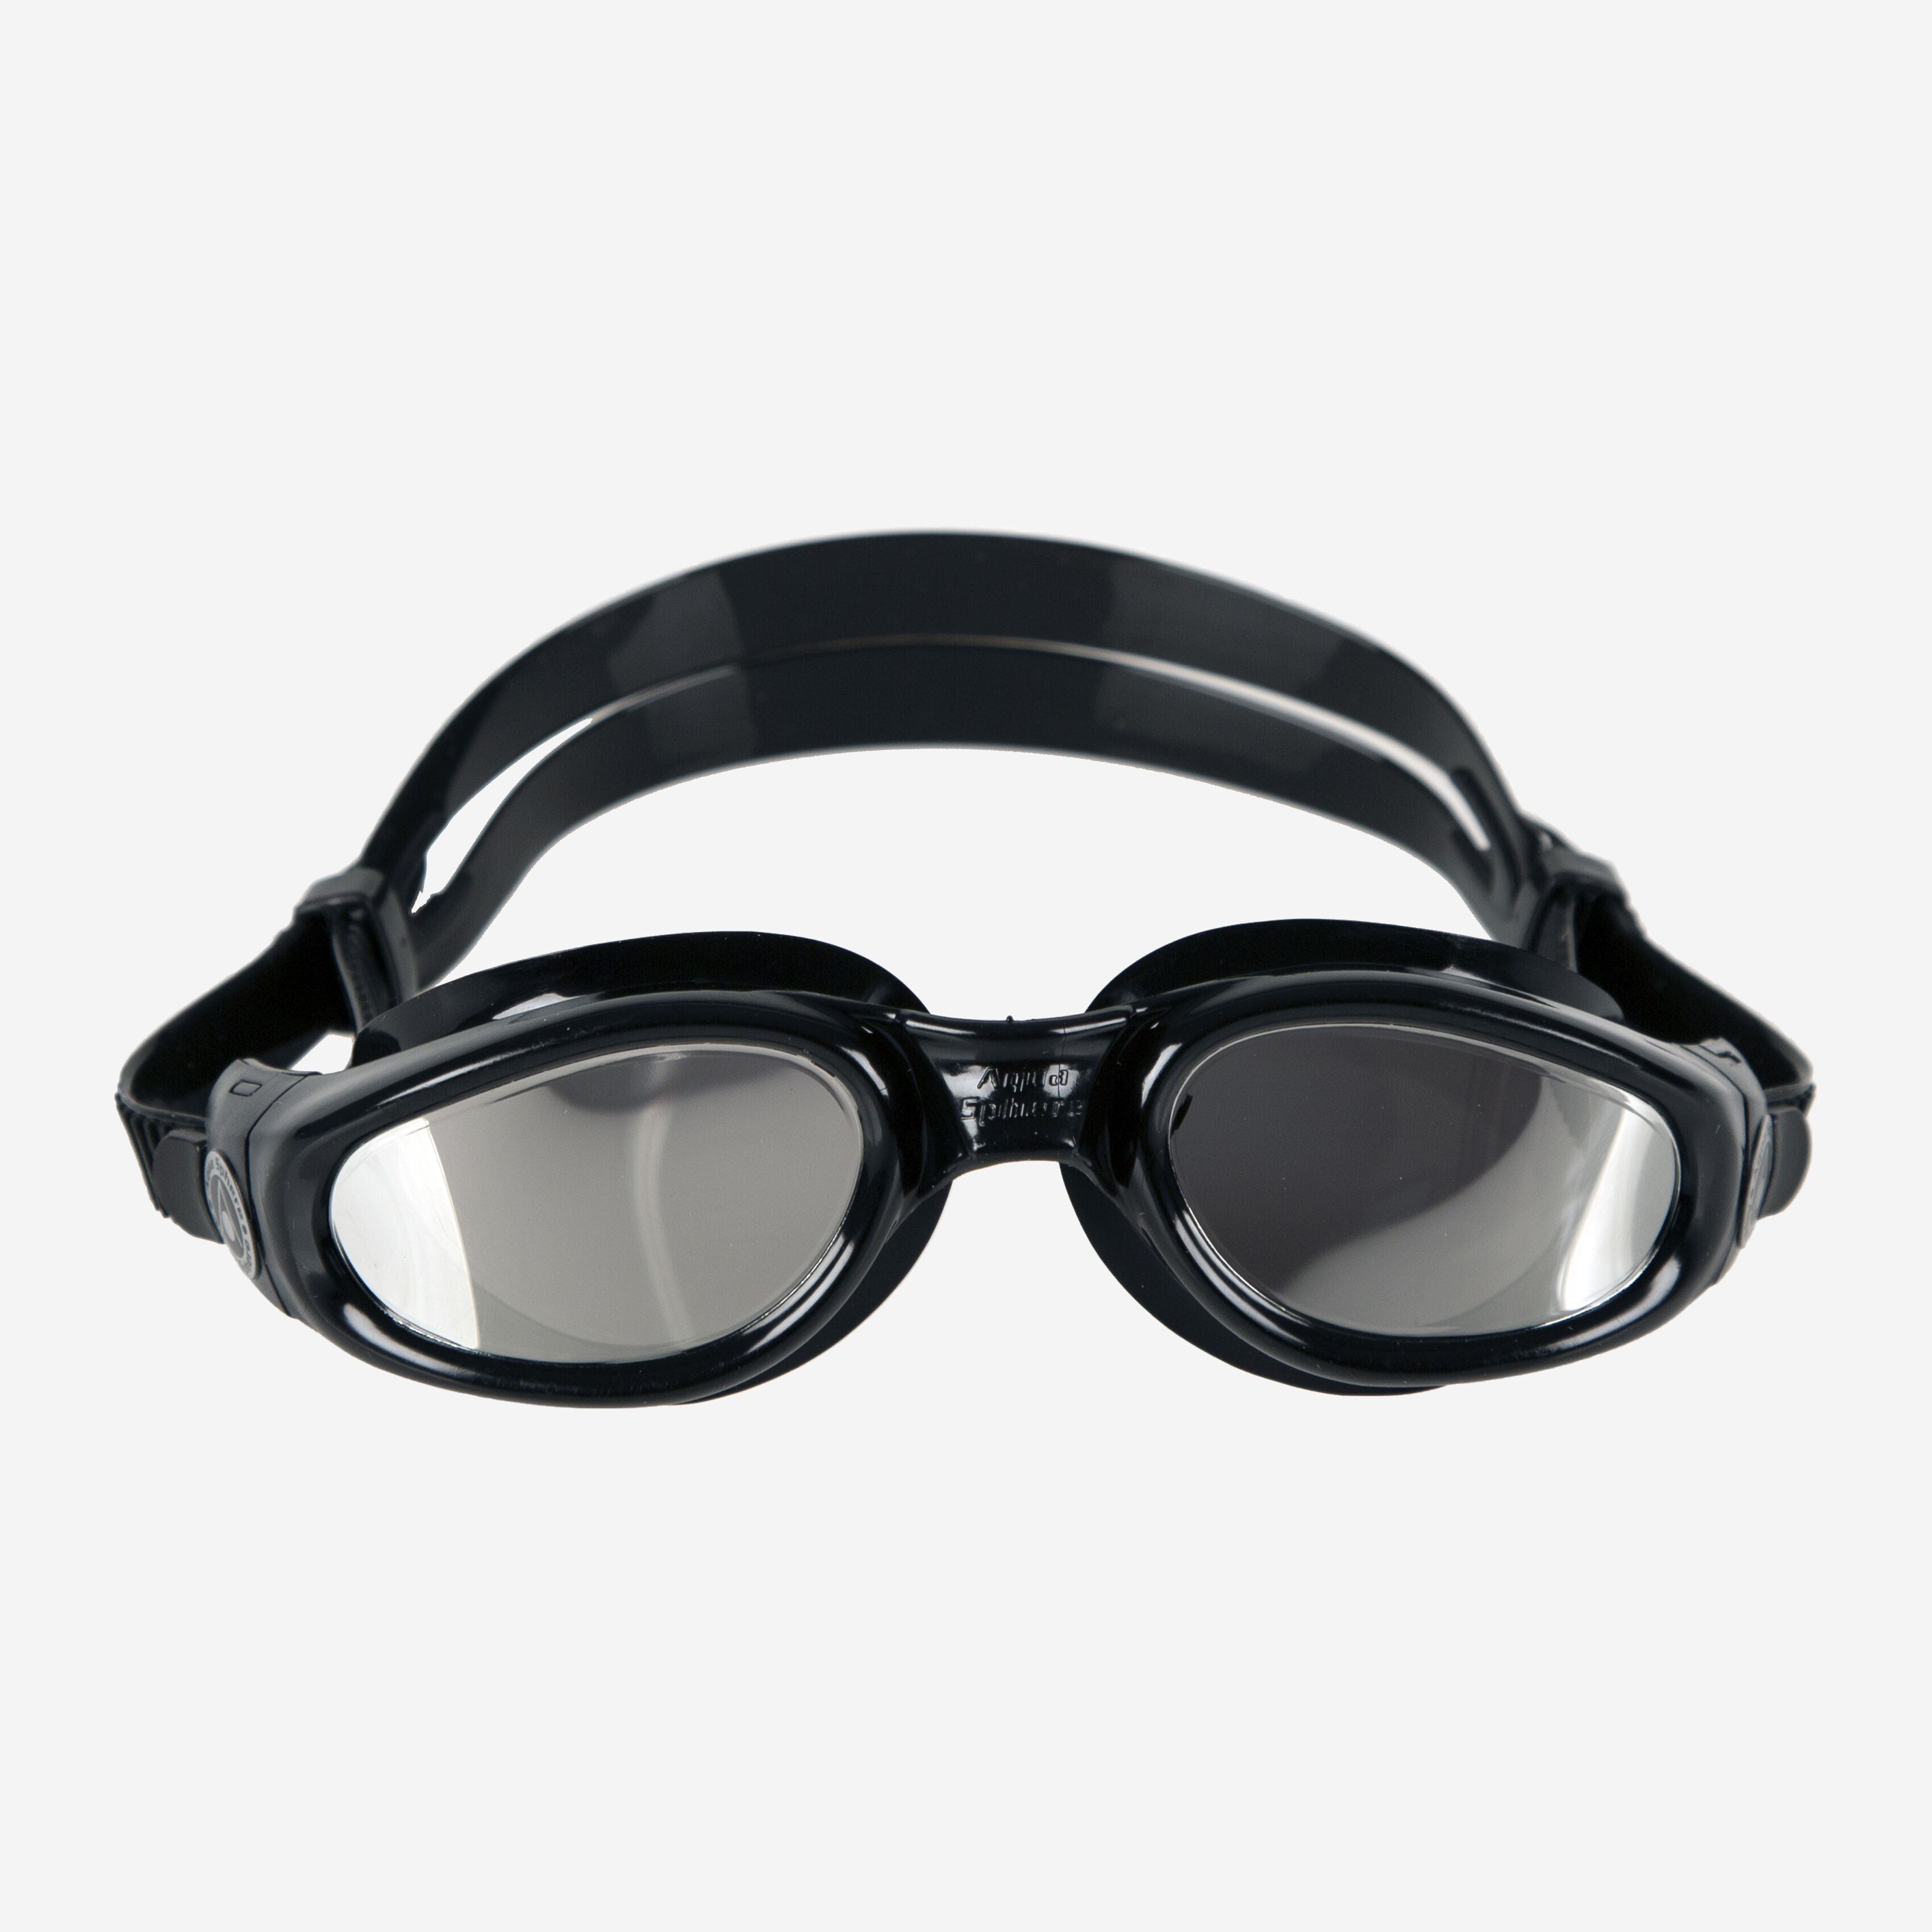 uk store good selling well known Aqua Sphere Kaiman mirror goggles 2019